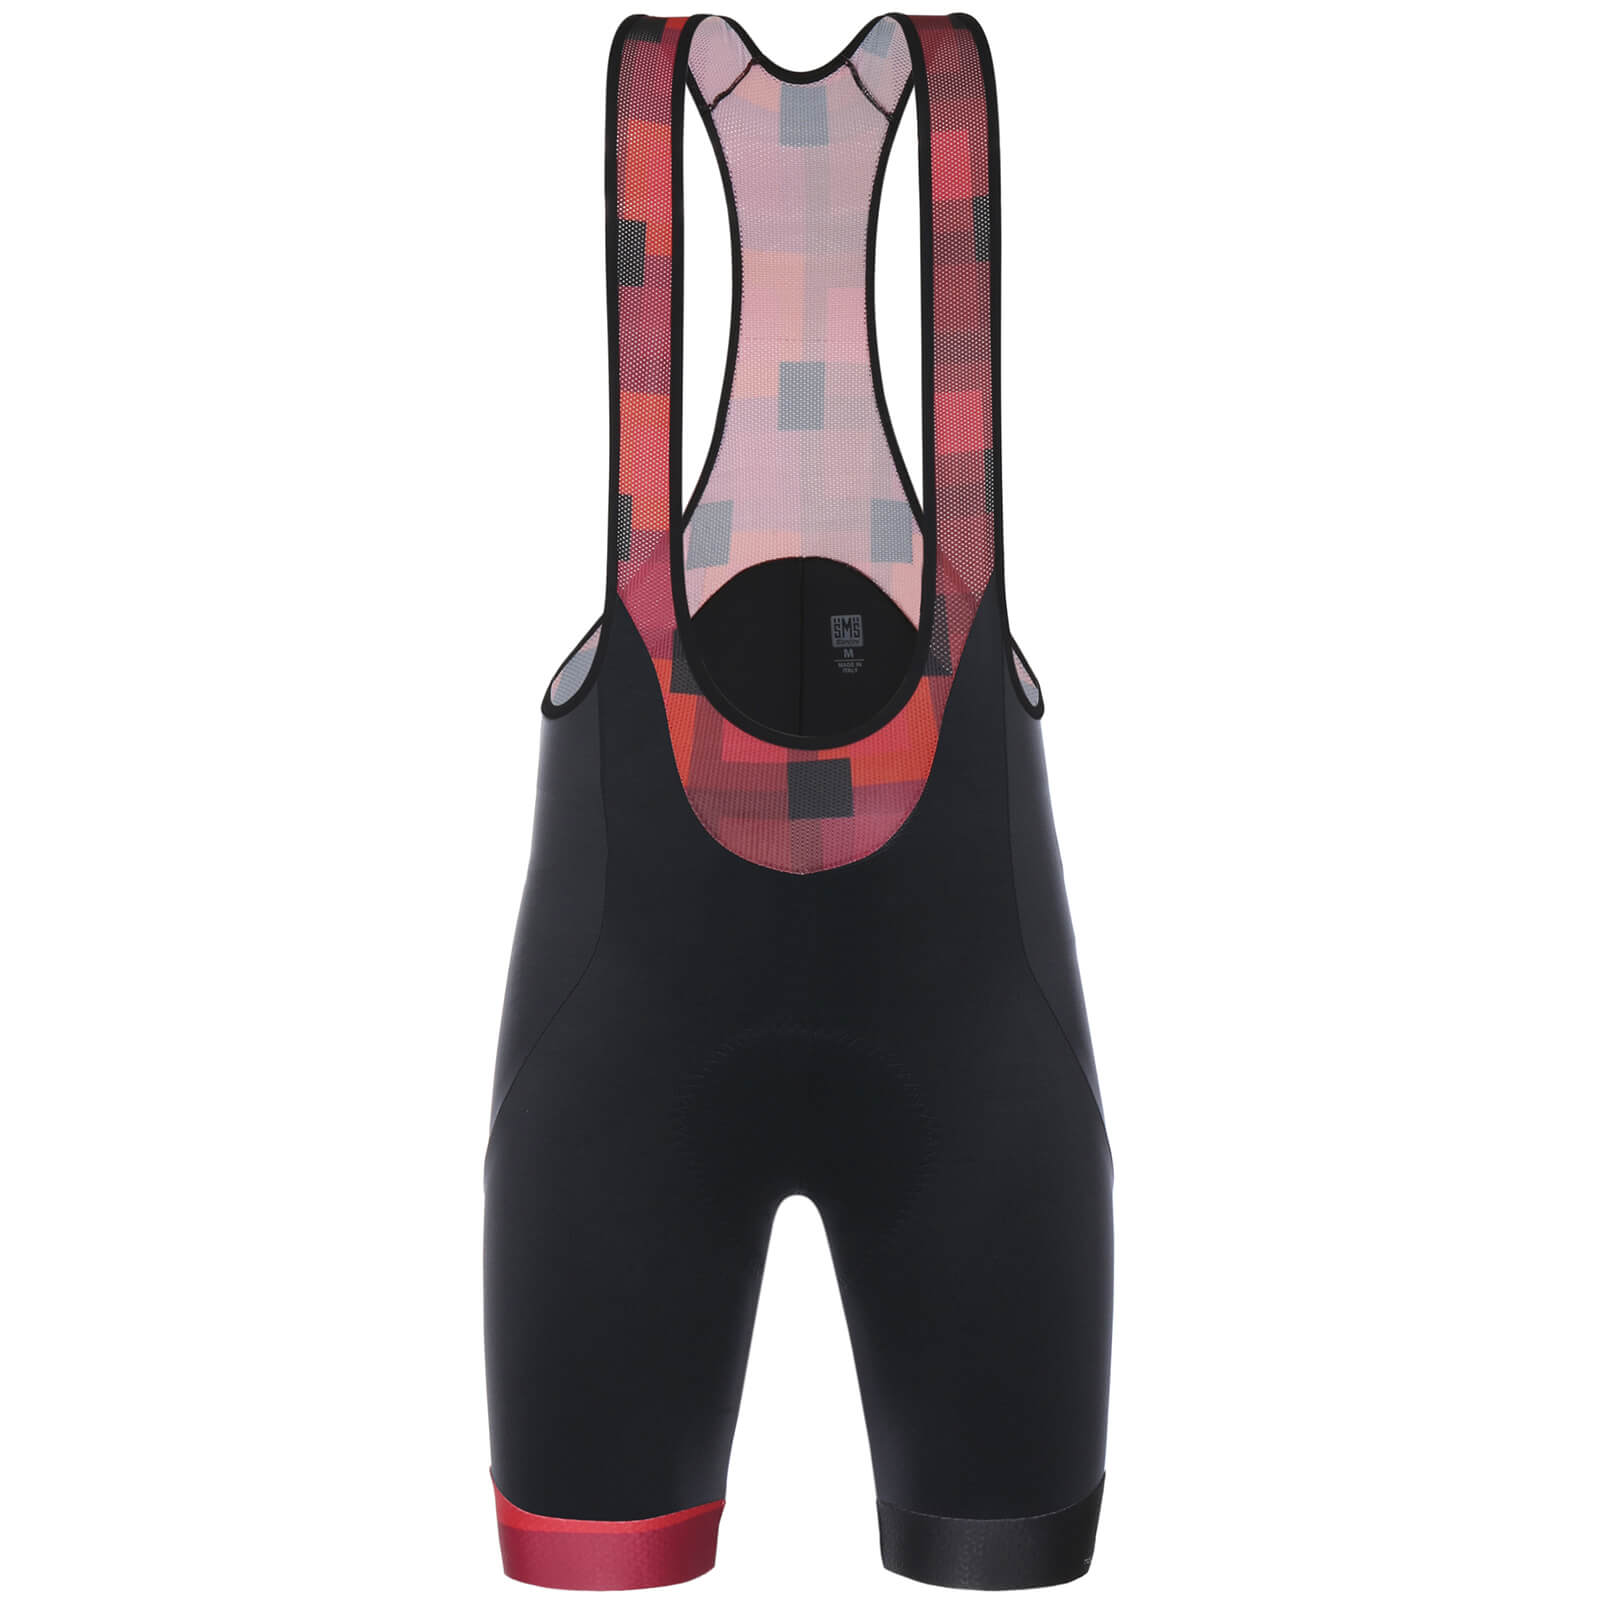 Santini Tour de Suisse 2018 Cross Bib Shorts - Black/Red